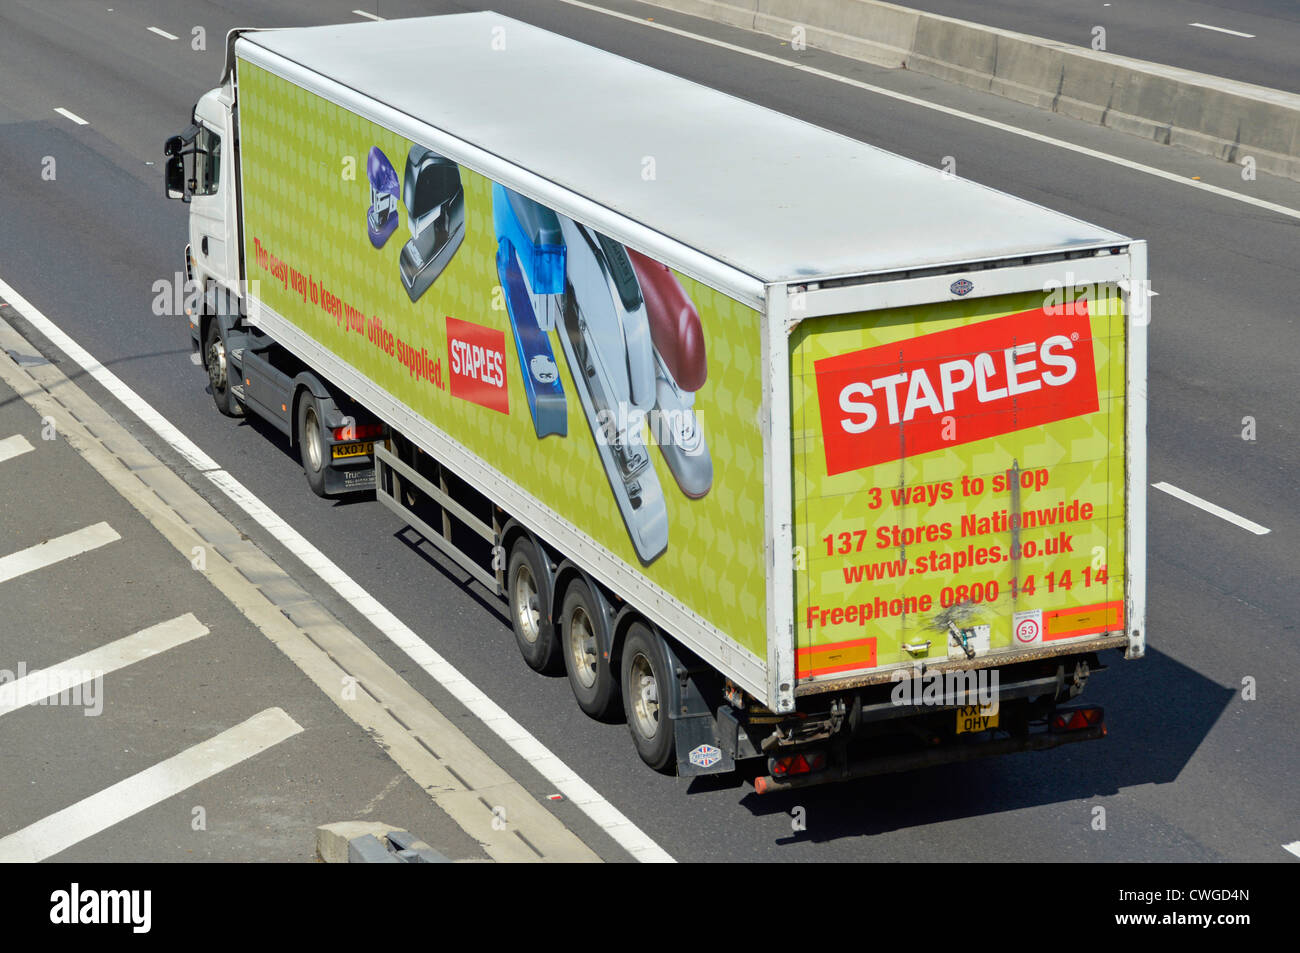 Staples office supplies company articulated superstores delivery lorry - Stock Image